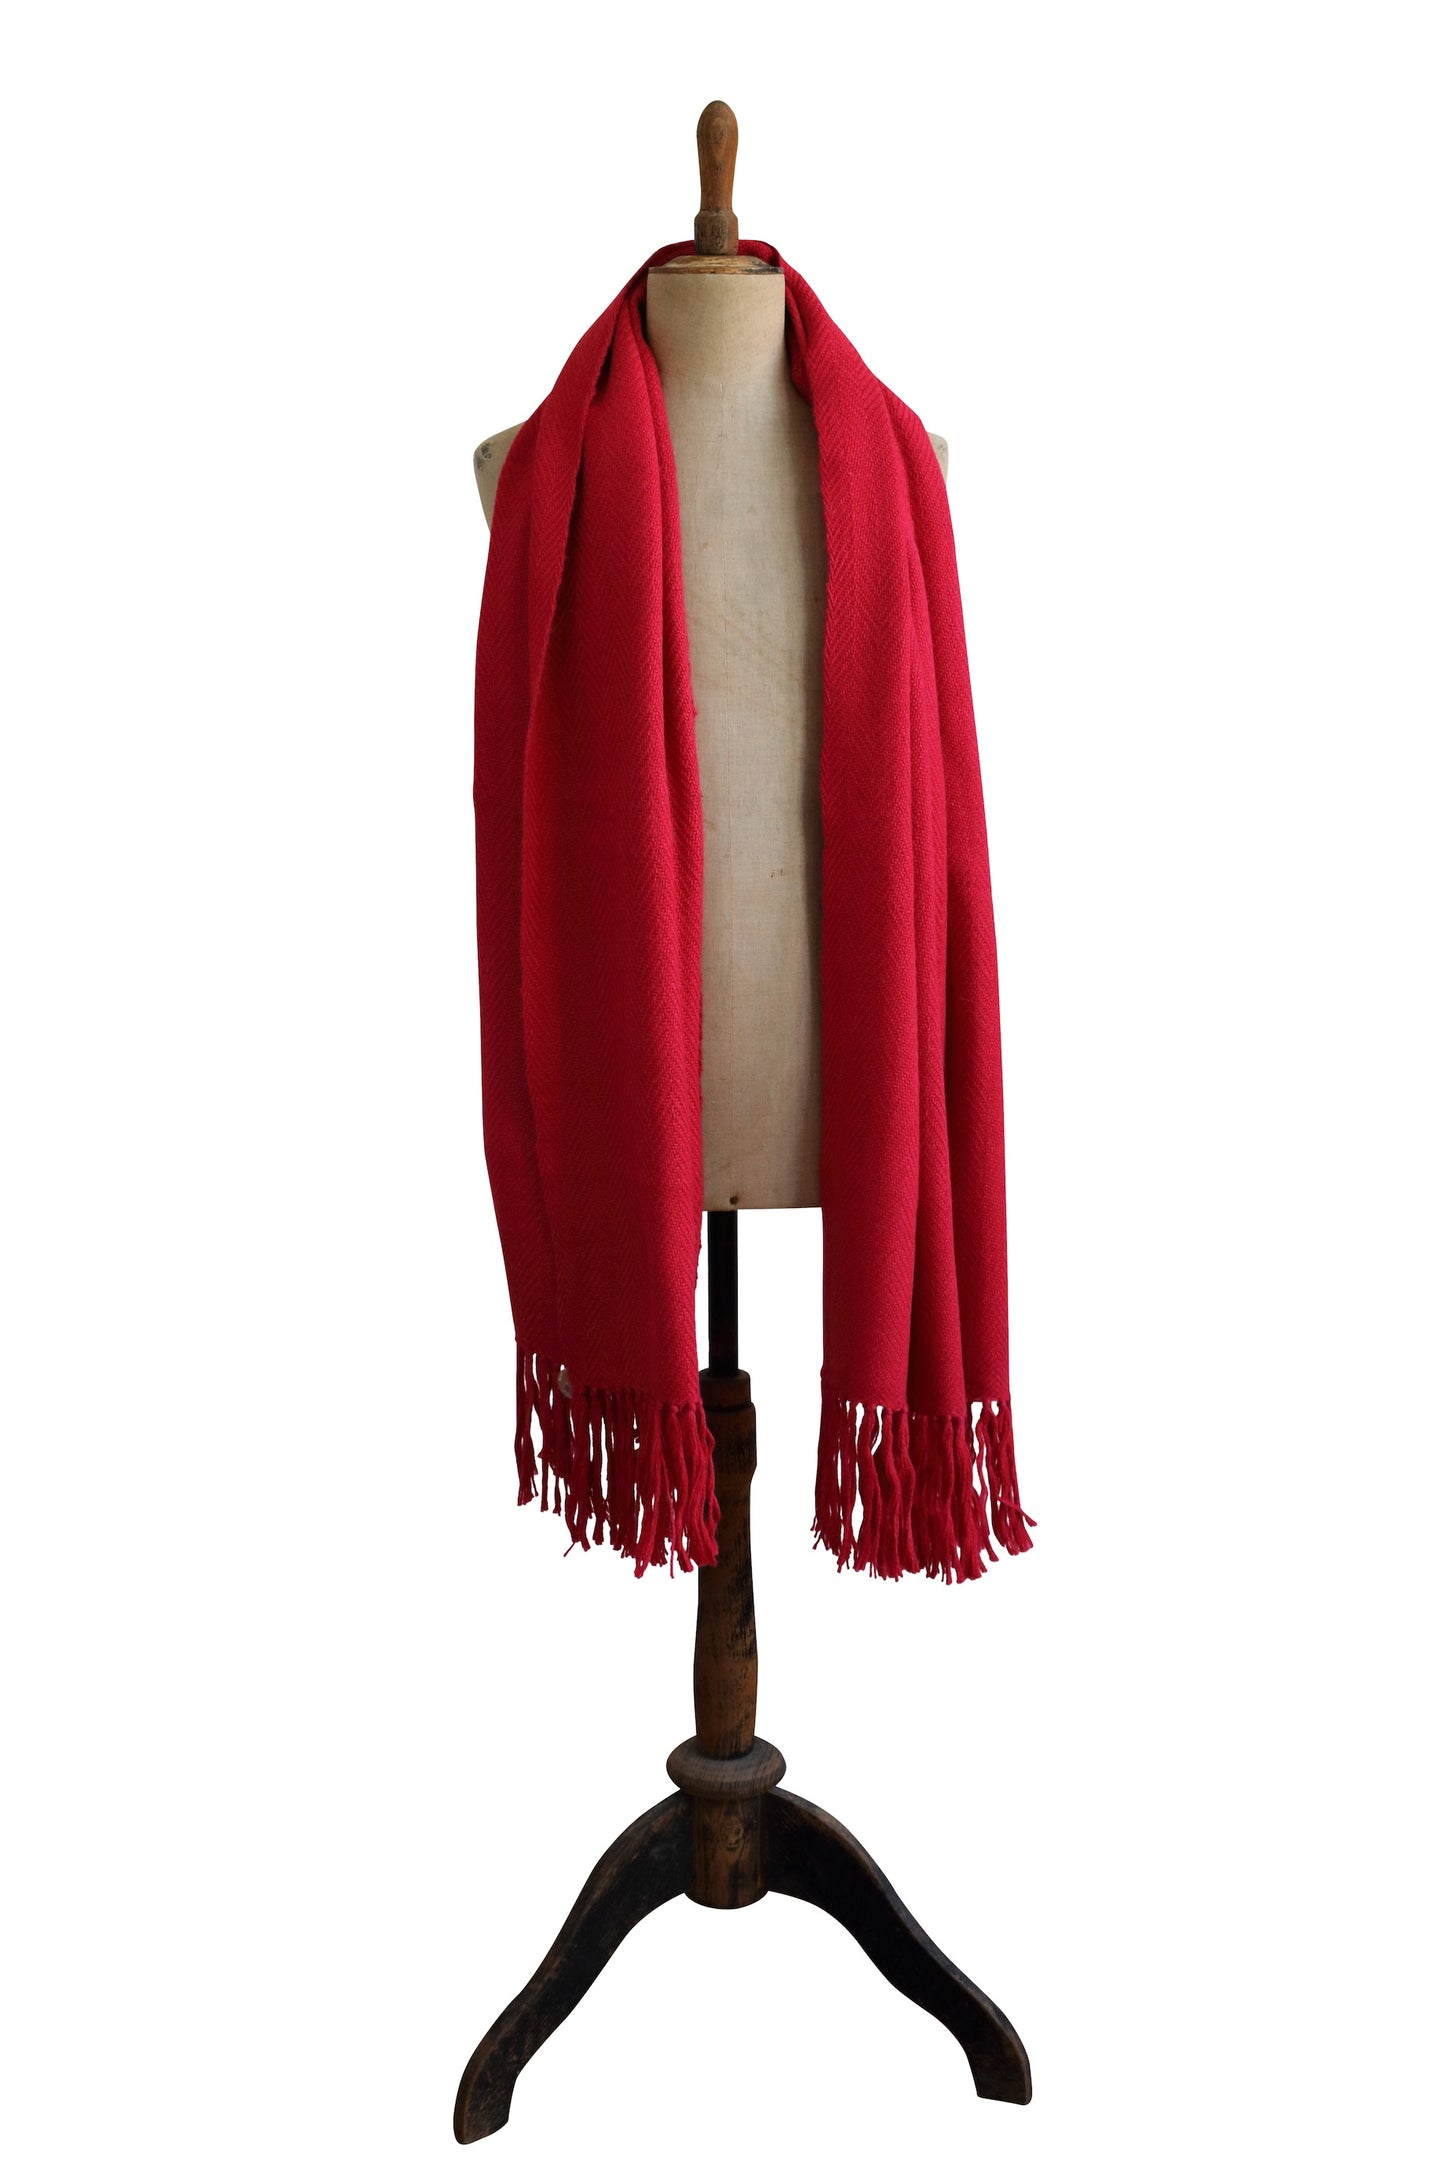 Large red scarf